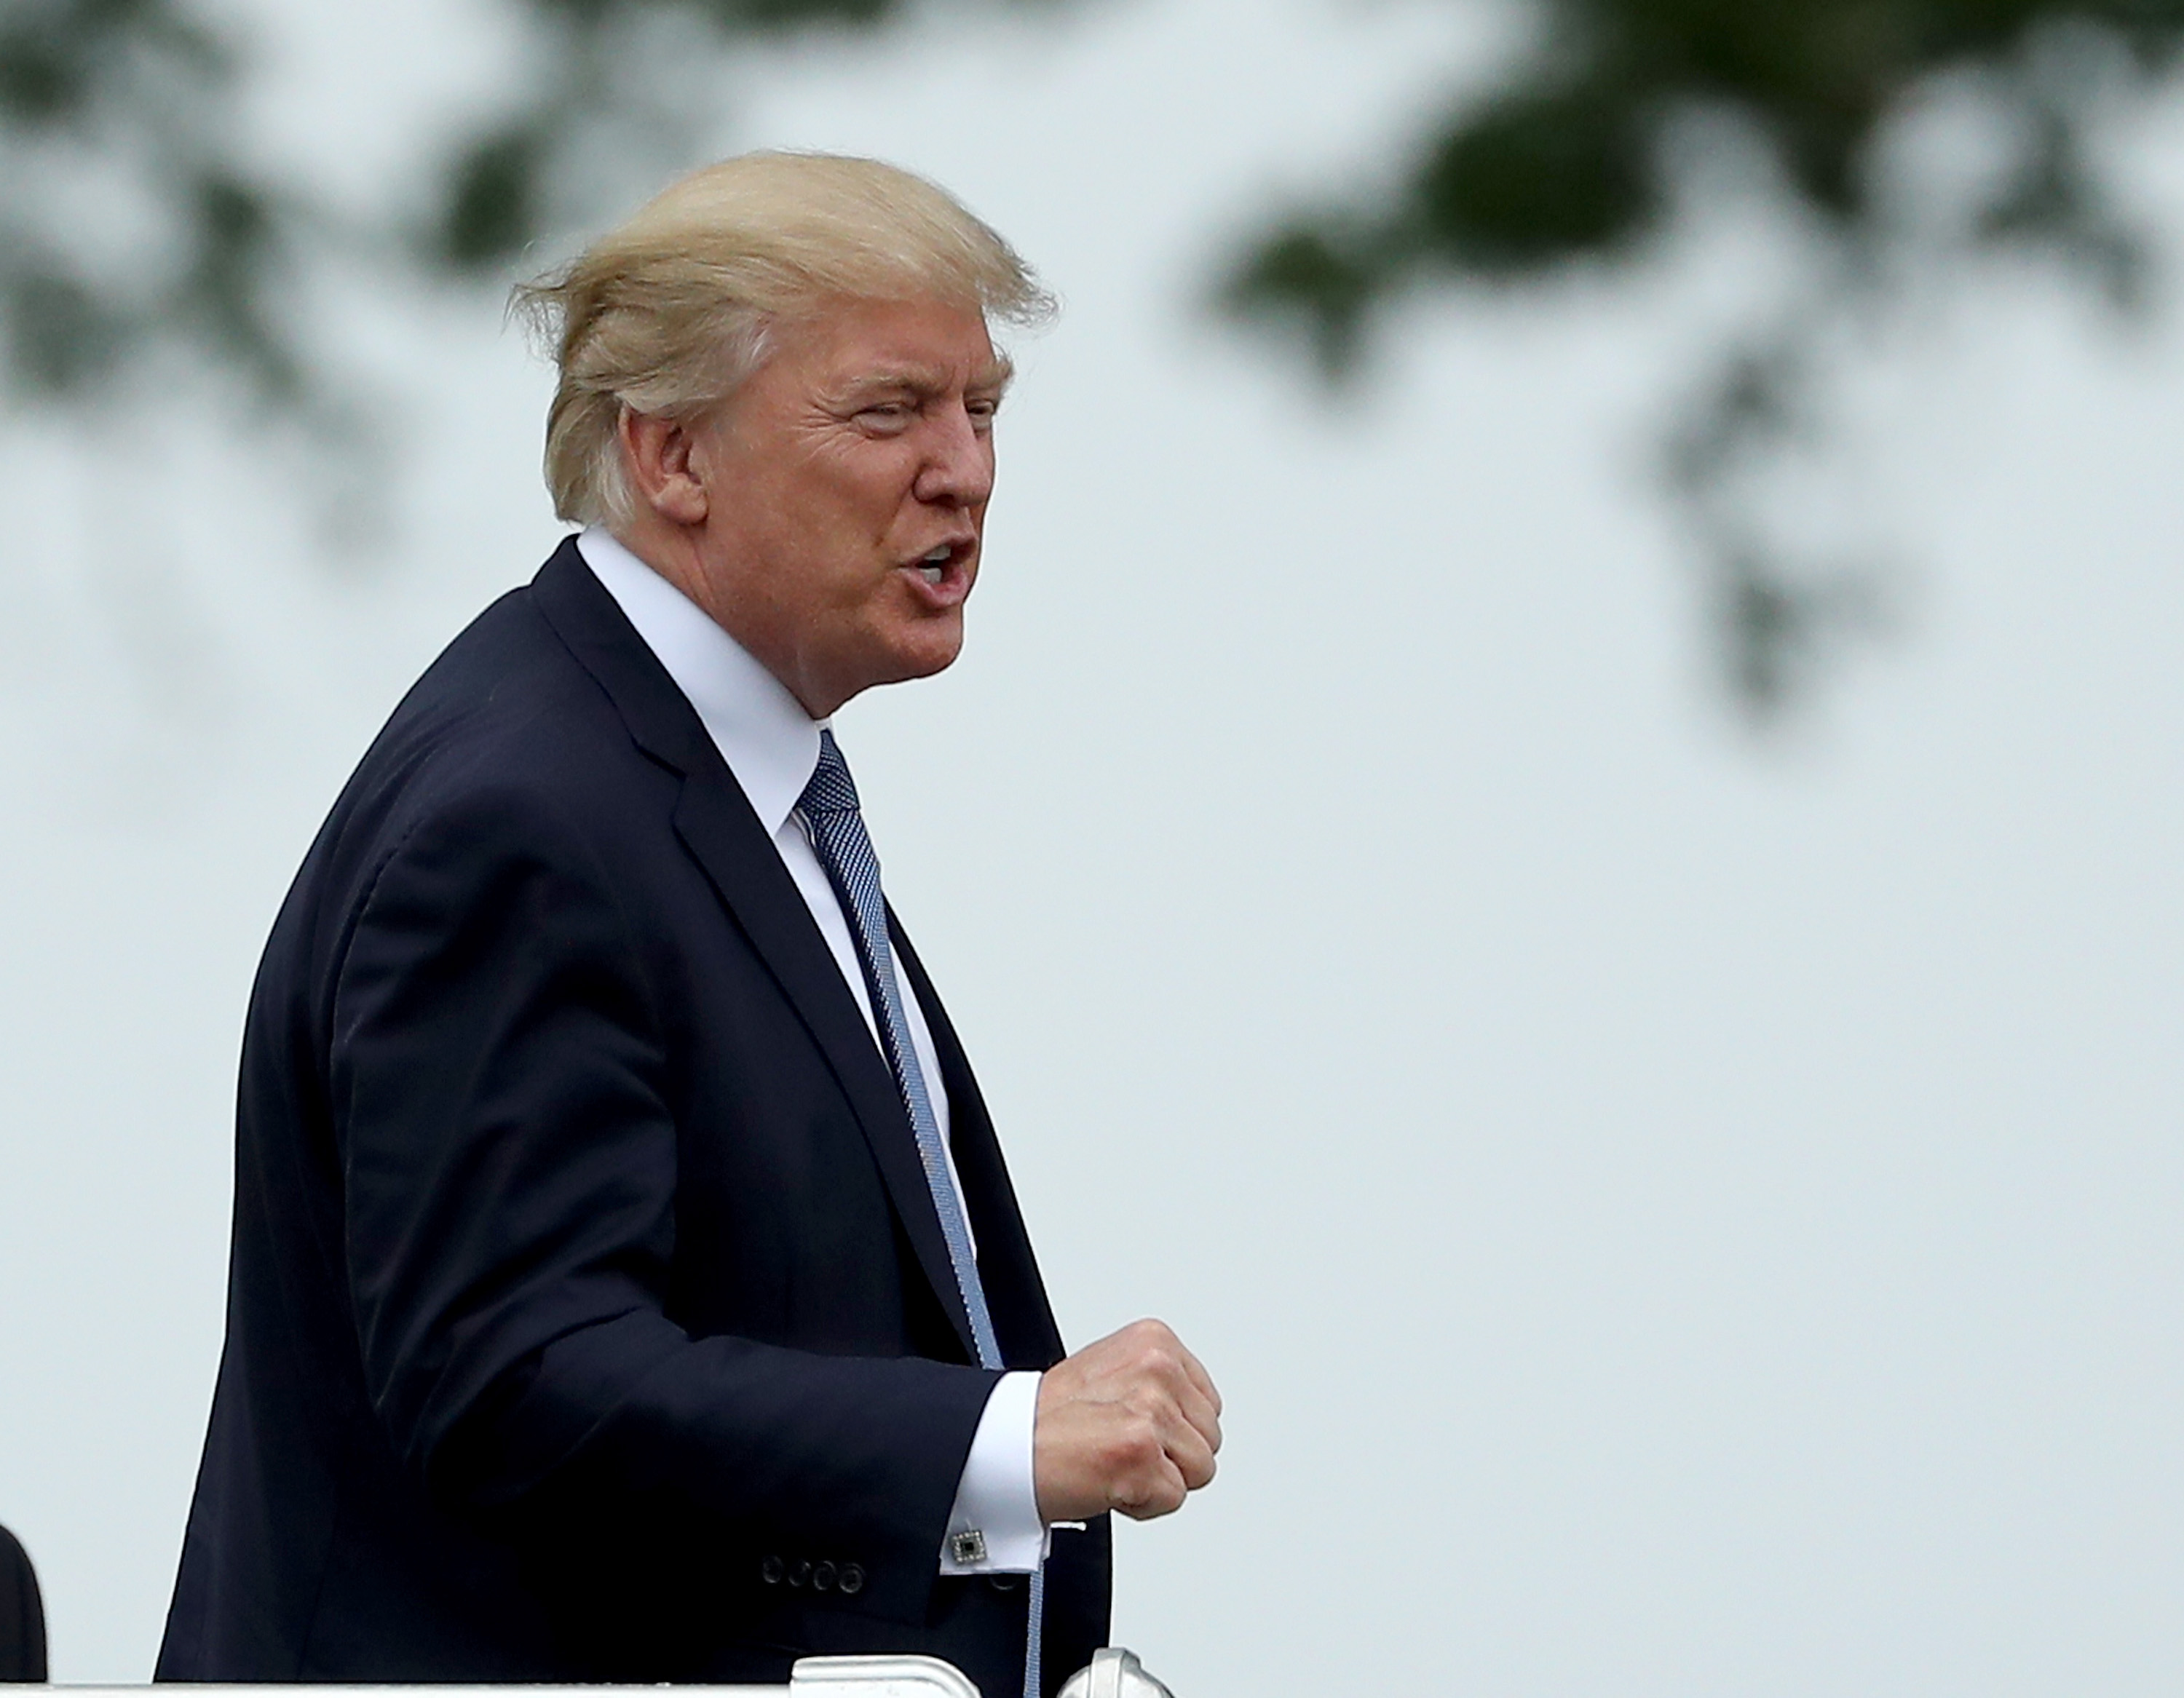 President Donald Trump acknowledges the patrons in the clubhouse as he leaves the U.S. Women's Open round two on July 14, 2017 at Trump National Golf Course in Bedminster, New Jersey.